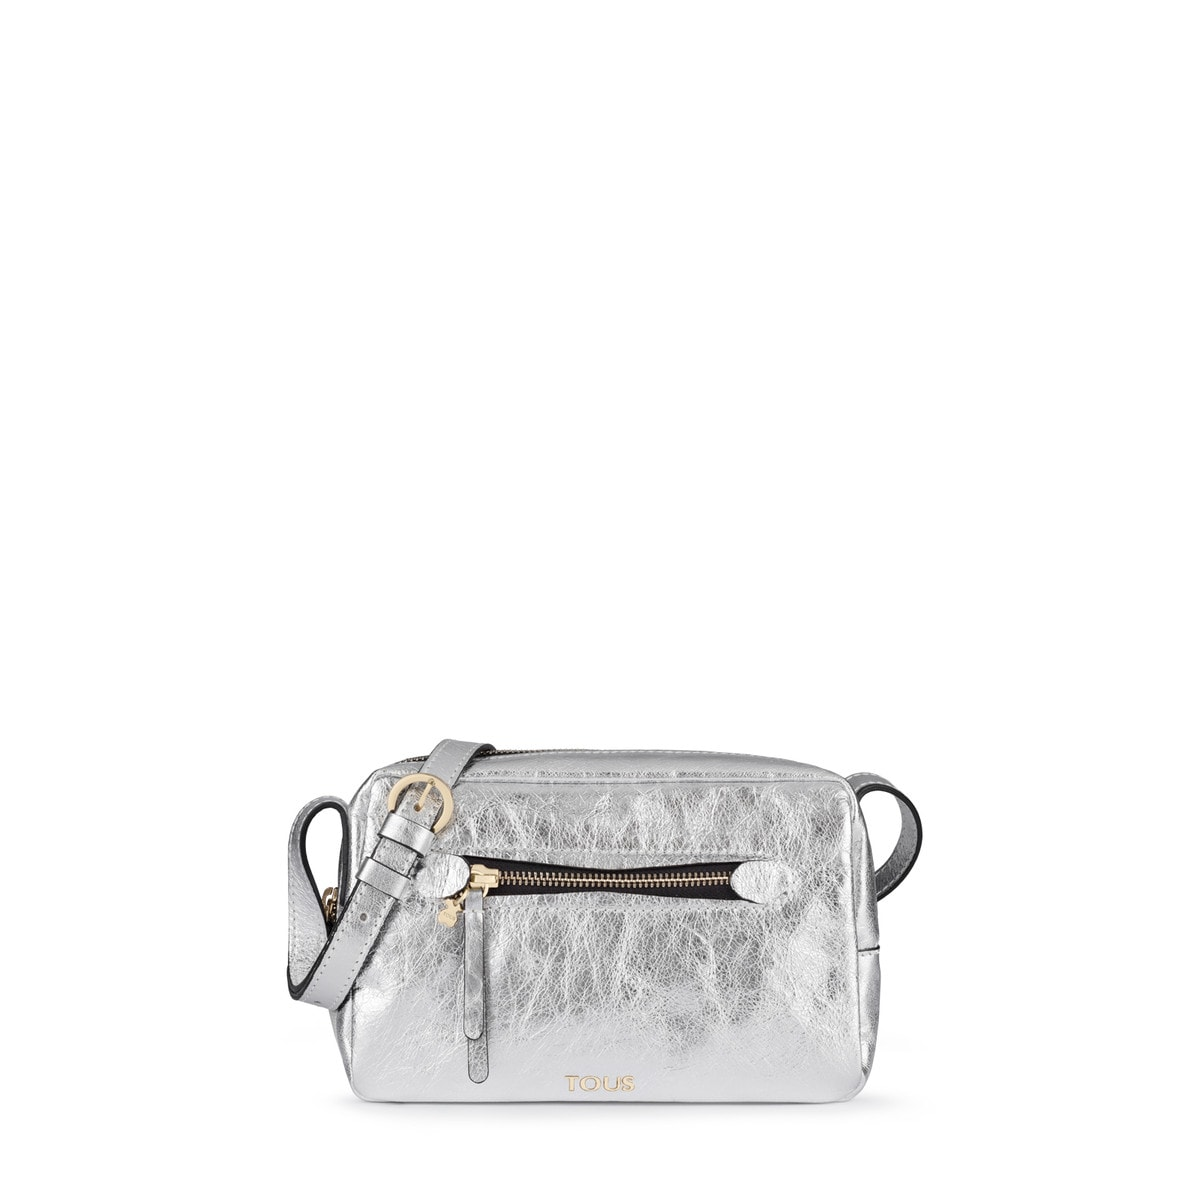 5c1920a3d Small silver colored Leather Tulia Crack Crossbody bag - Tous Site GB